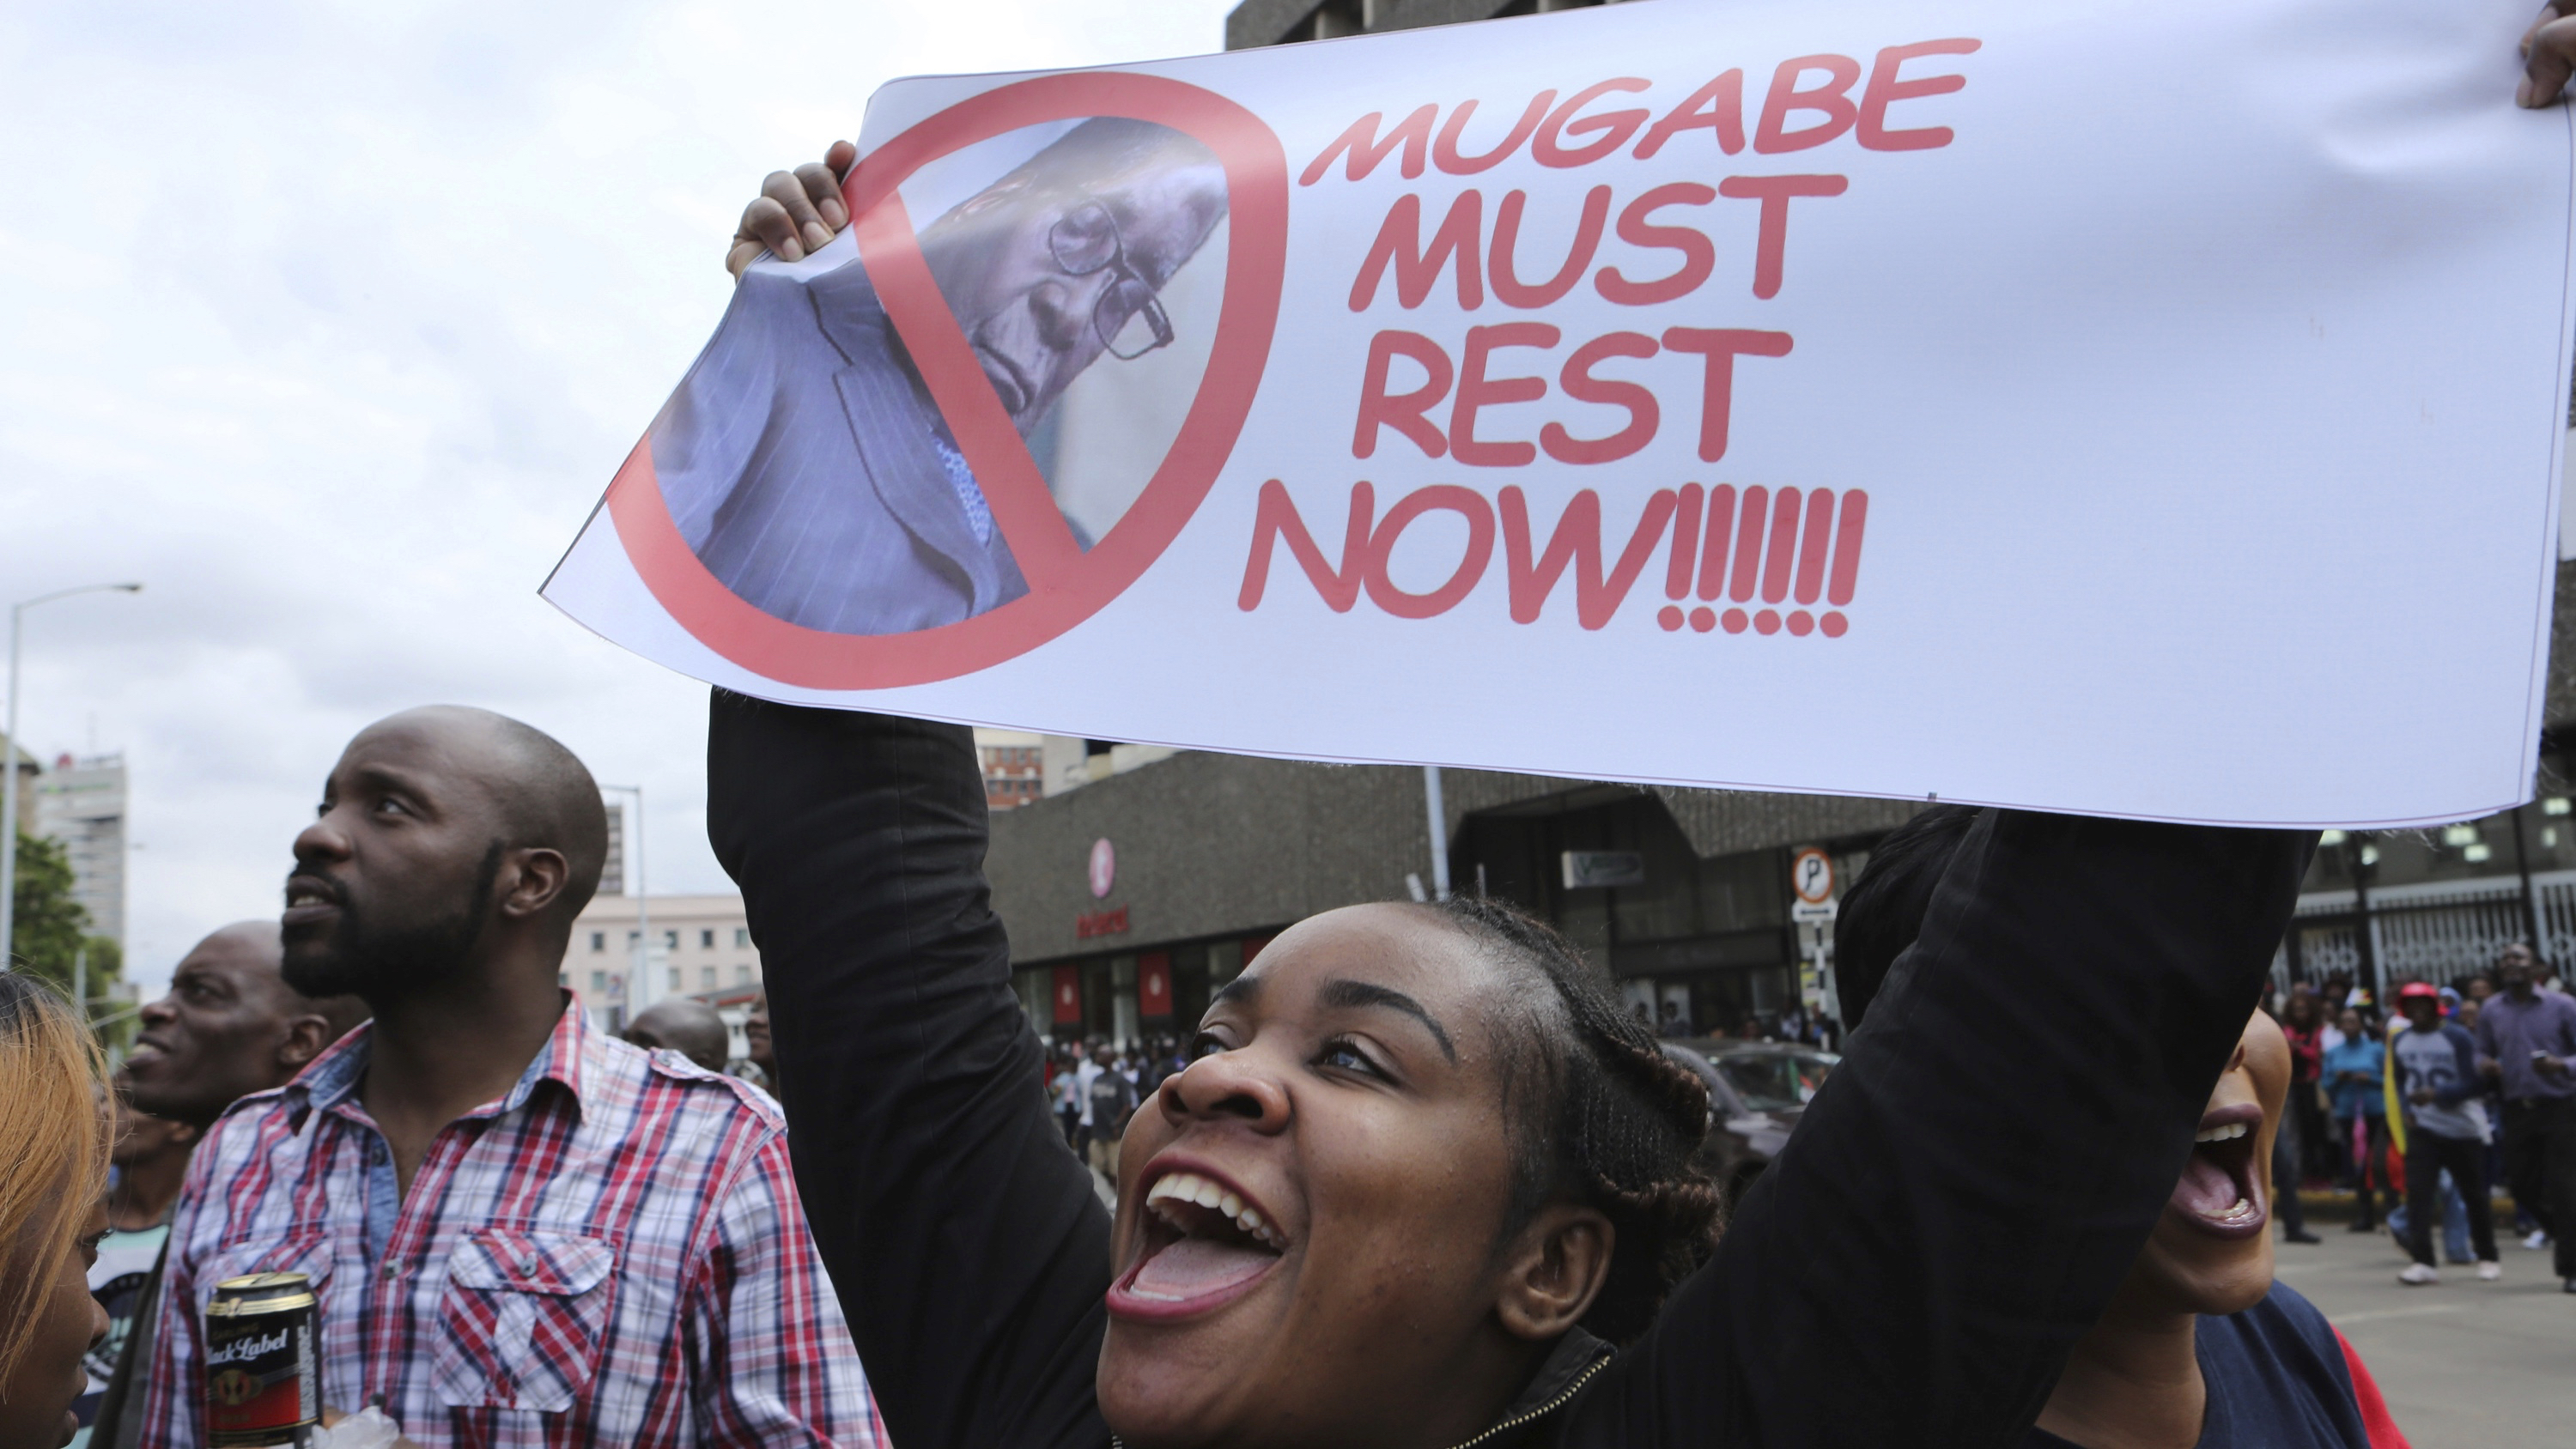 Euphoric crowds  march on the streets of   Harare, demanding the departure  of President Robert Mugabe,  Saturday Nov, 18, 2017.  Zimbabweans giddy with joy raced through interesections, raising their arms in triumph(AP Photo/Tsvangirayi Mukwazhi)